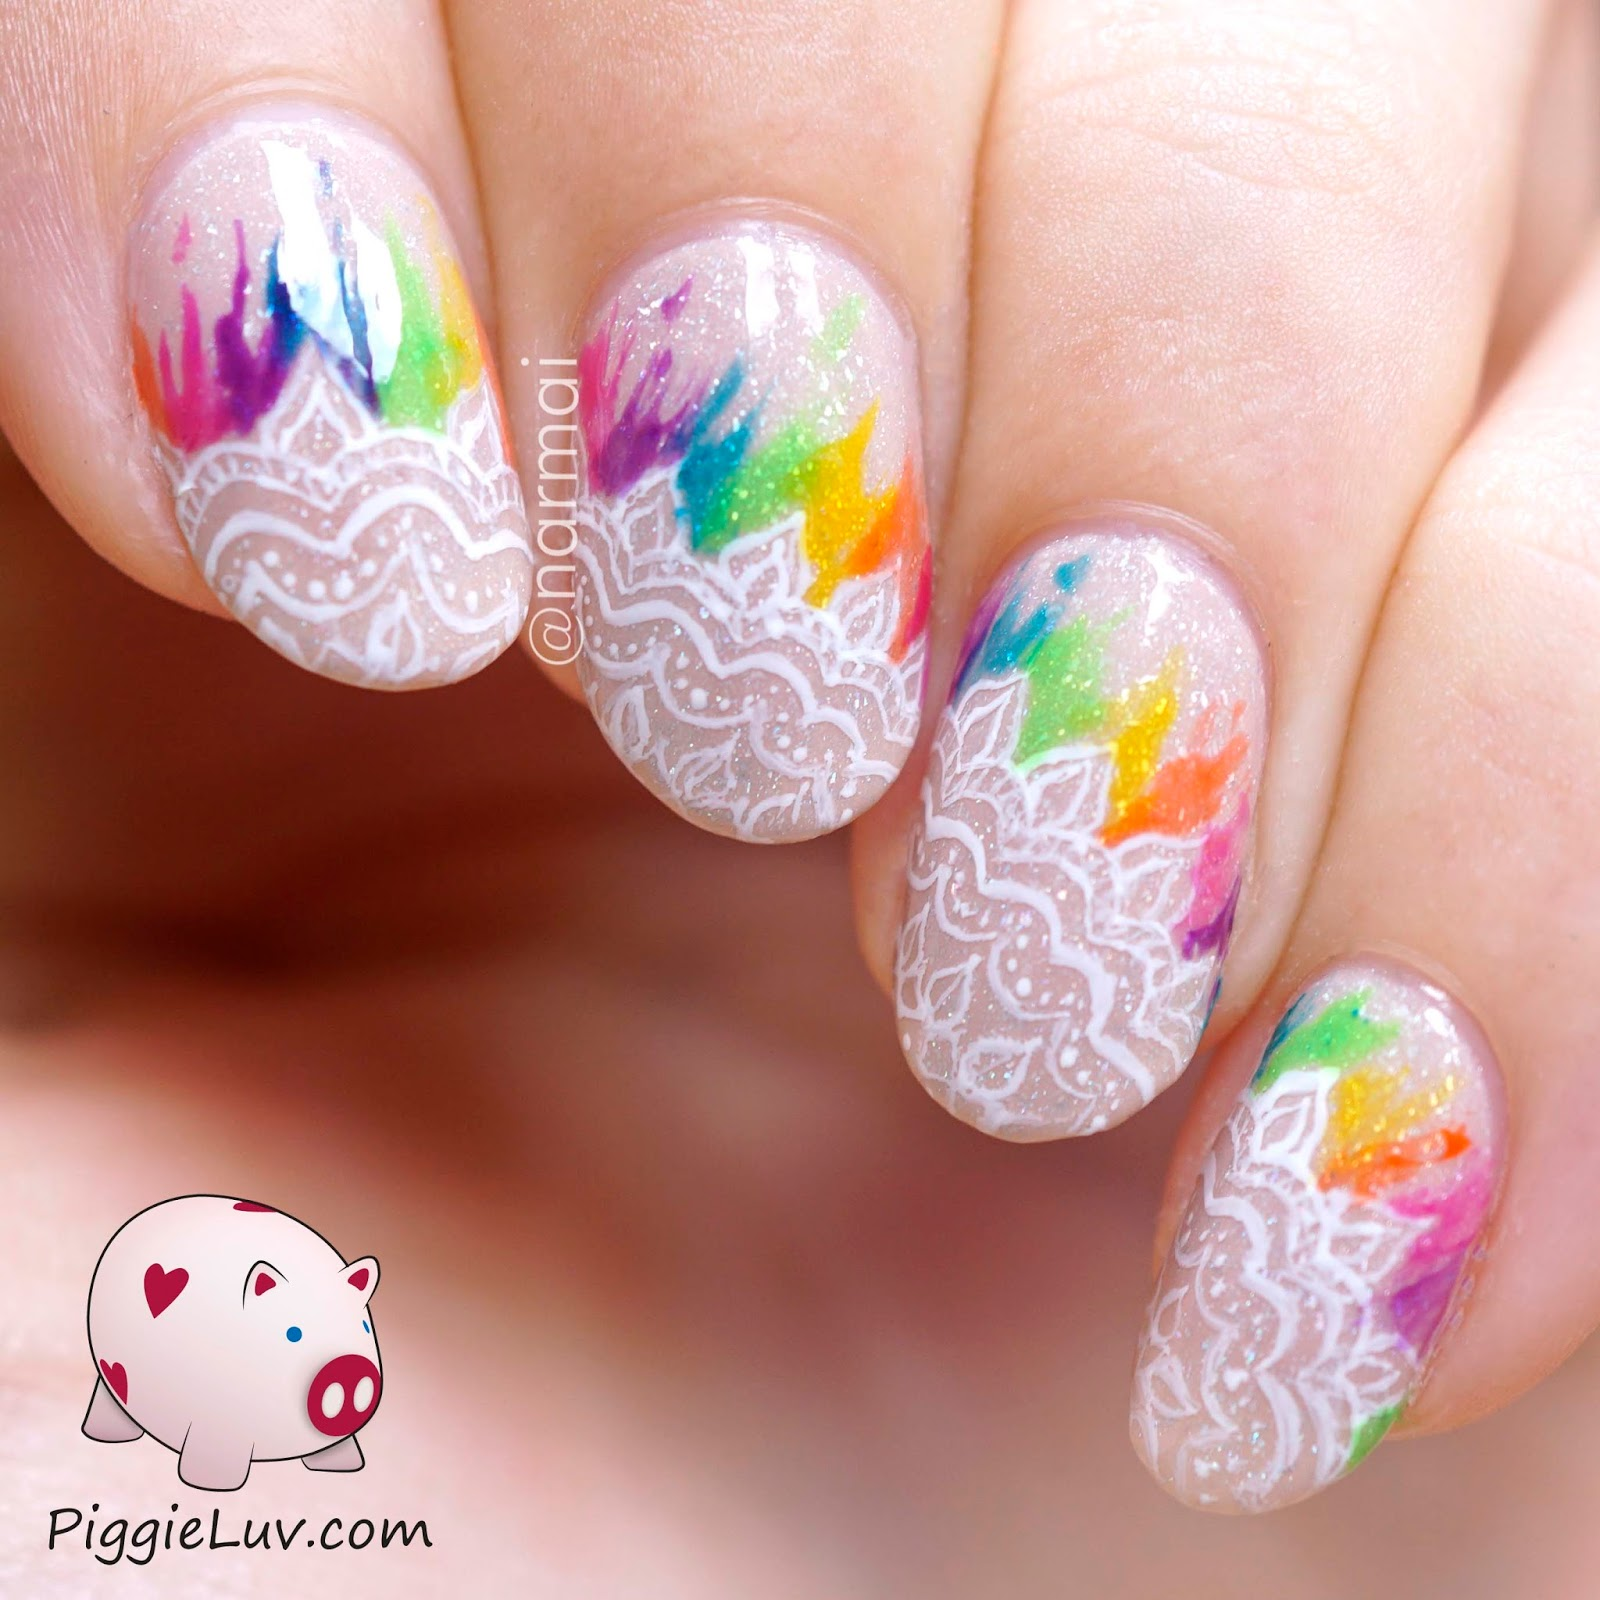 Piggieluv Rainbow Lace Bridal Style Nail Art With Opi